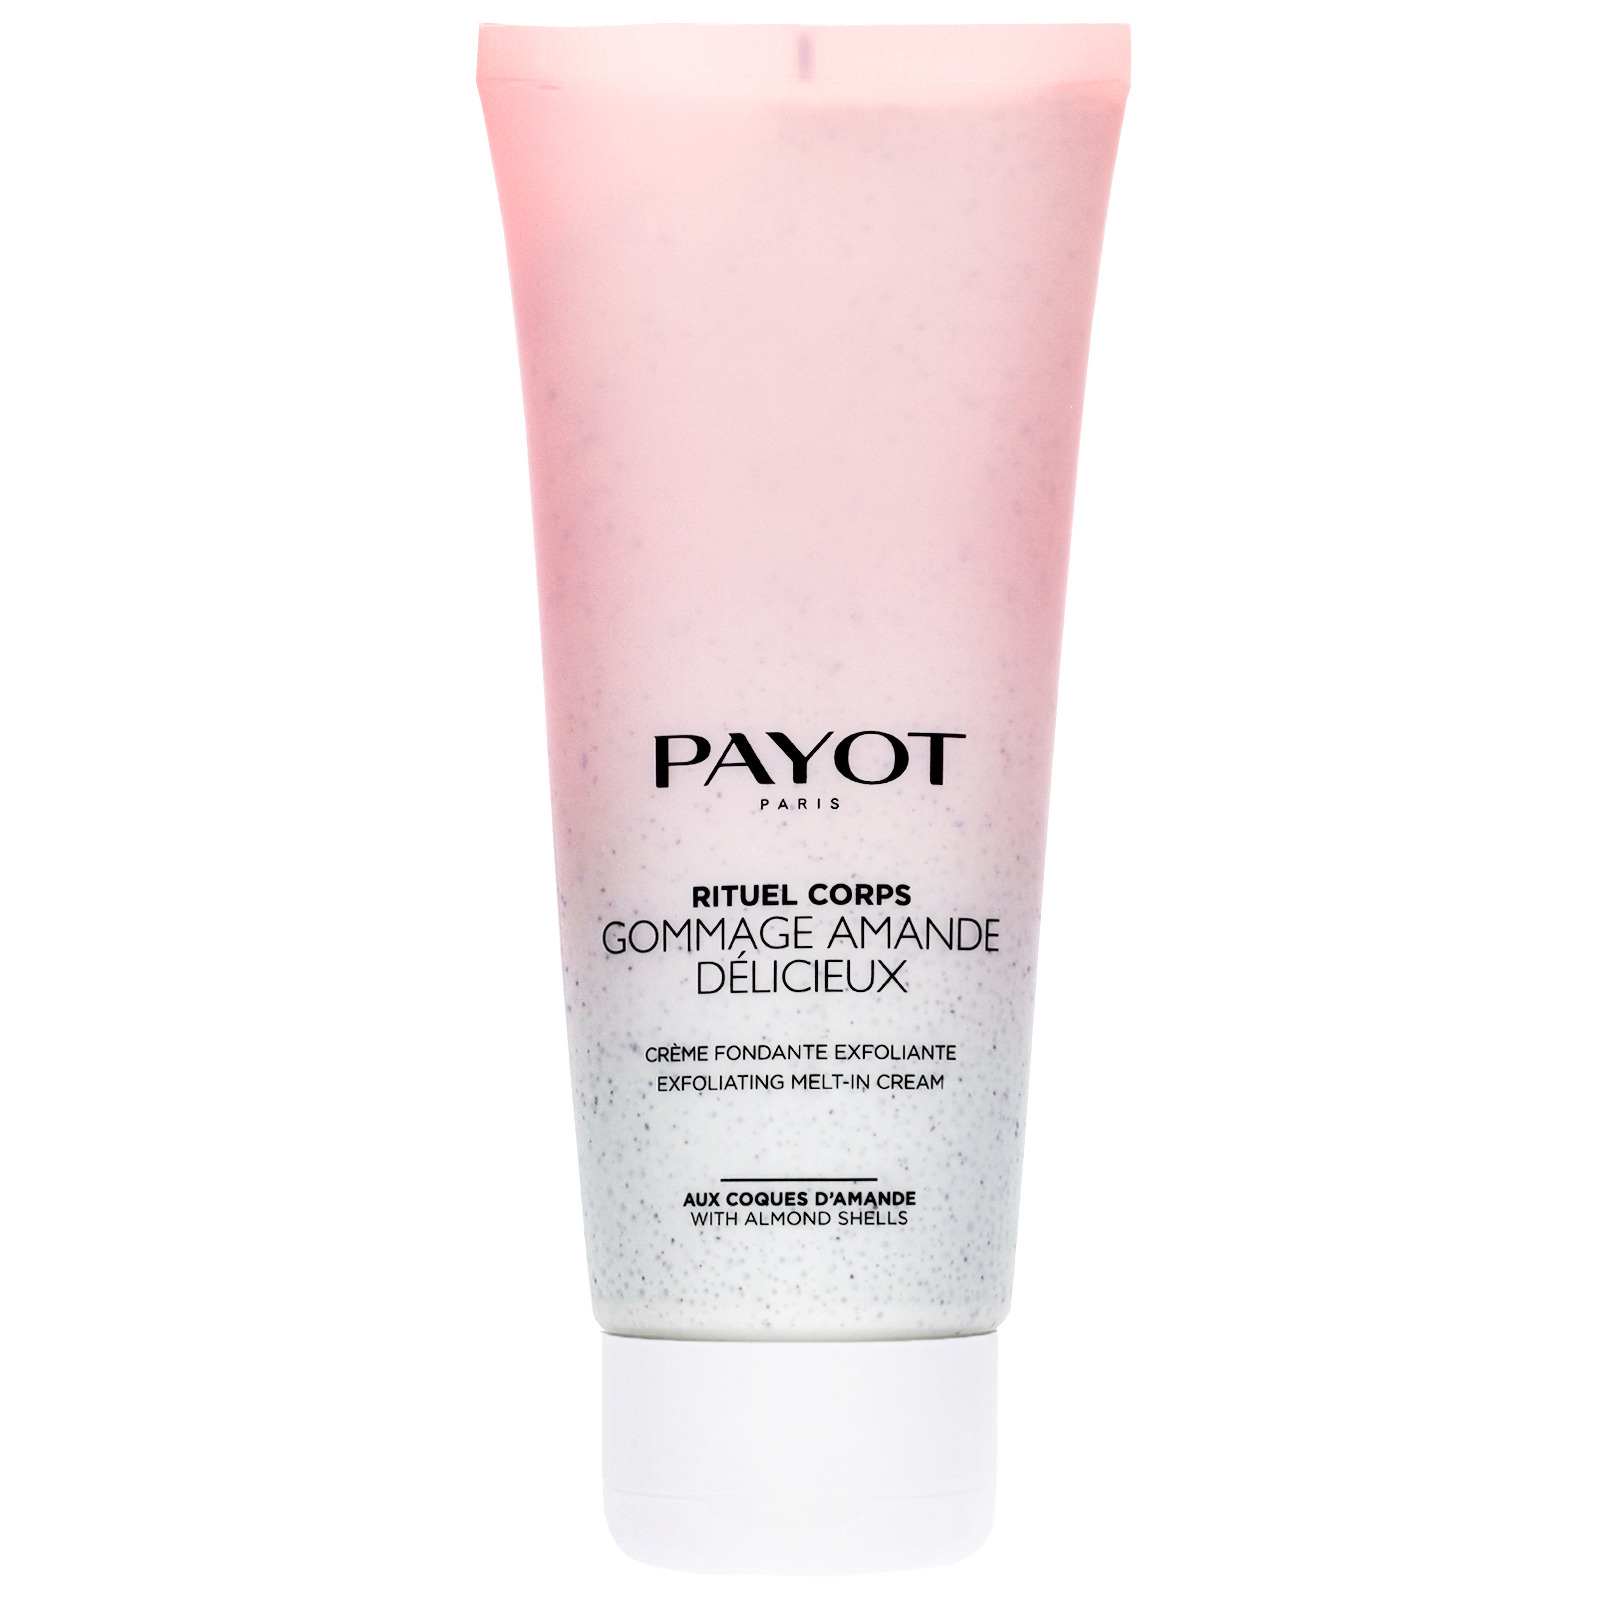 Payot Paris Rituel Corps Gommage Amande Delicieux: Exfoliating Melt-In Cream 200ml